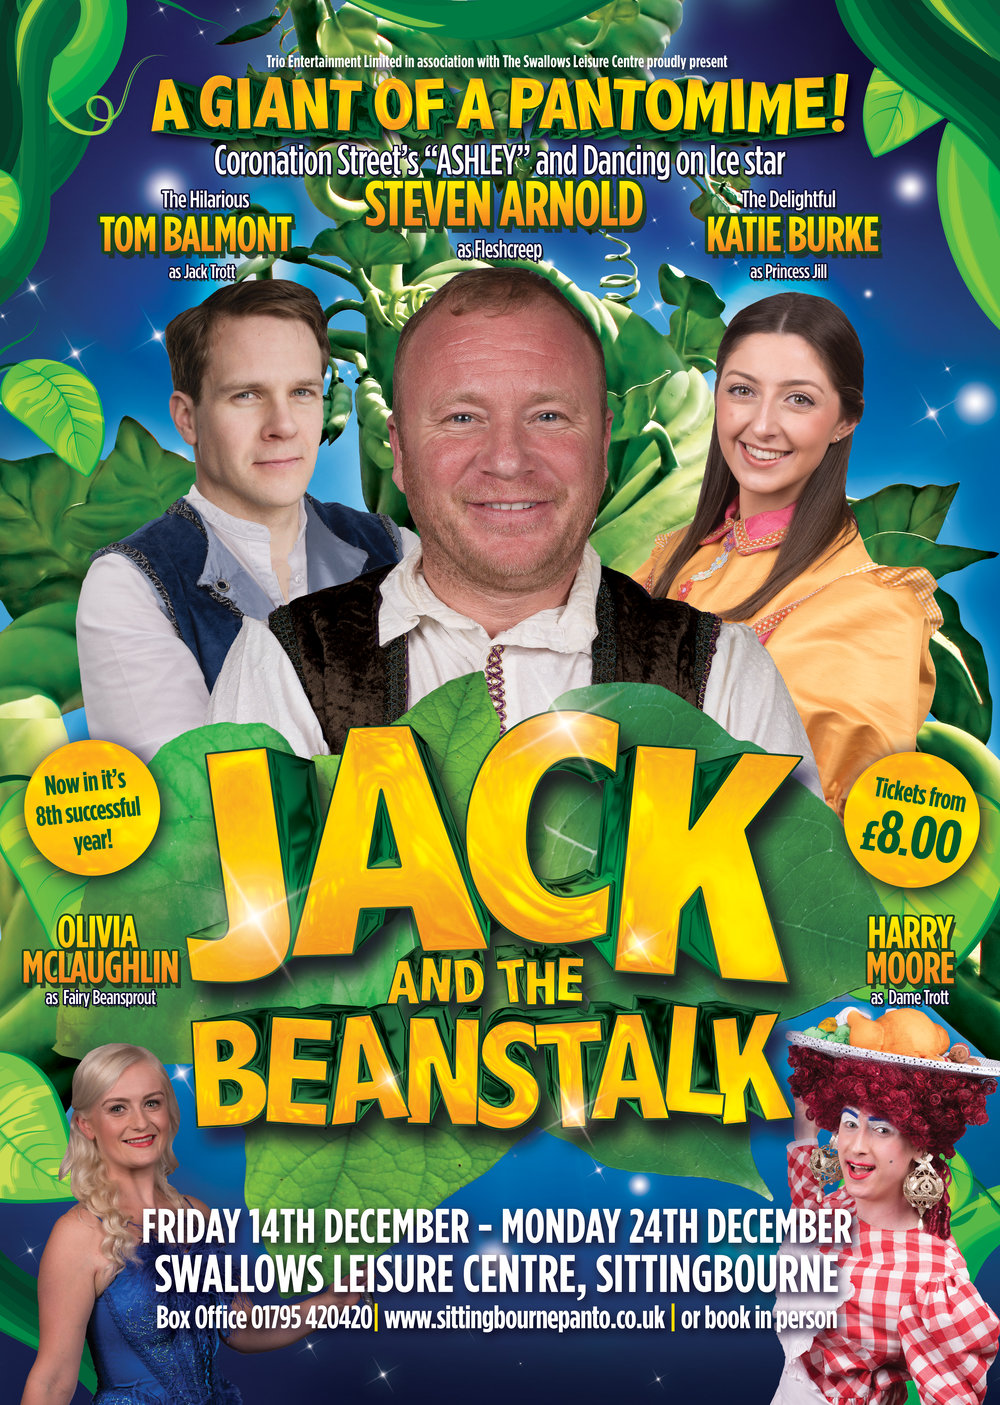 Jack And The Beanstalk  -Tour   December 2018    Knowsley Leisure & Culture Park Liverpool  Marine Hall, Fleetwood  Swallows Leisure Centre, Sittingbourne, Kent    Find Out More →